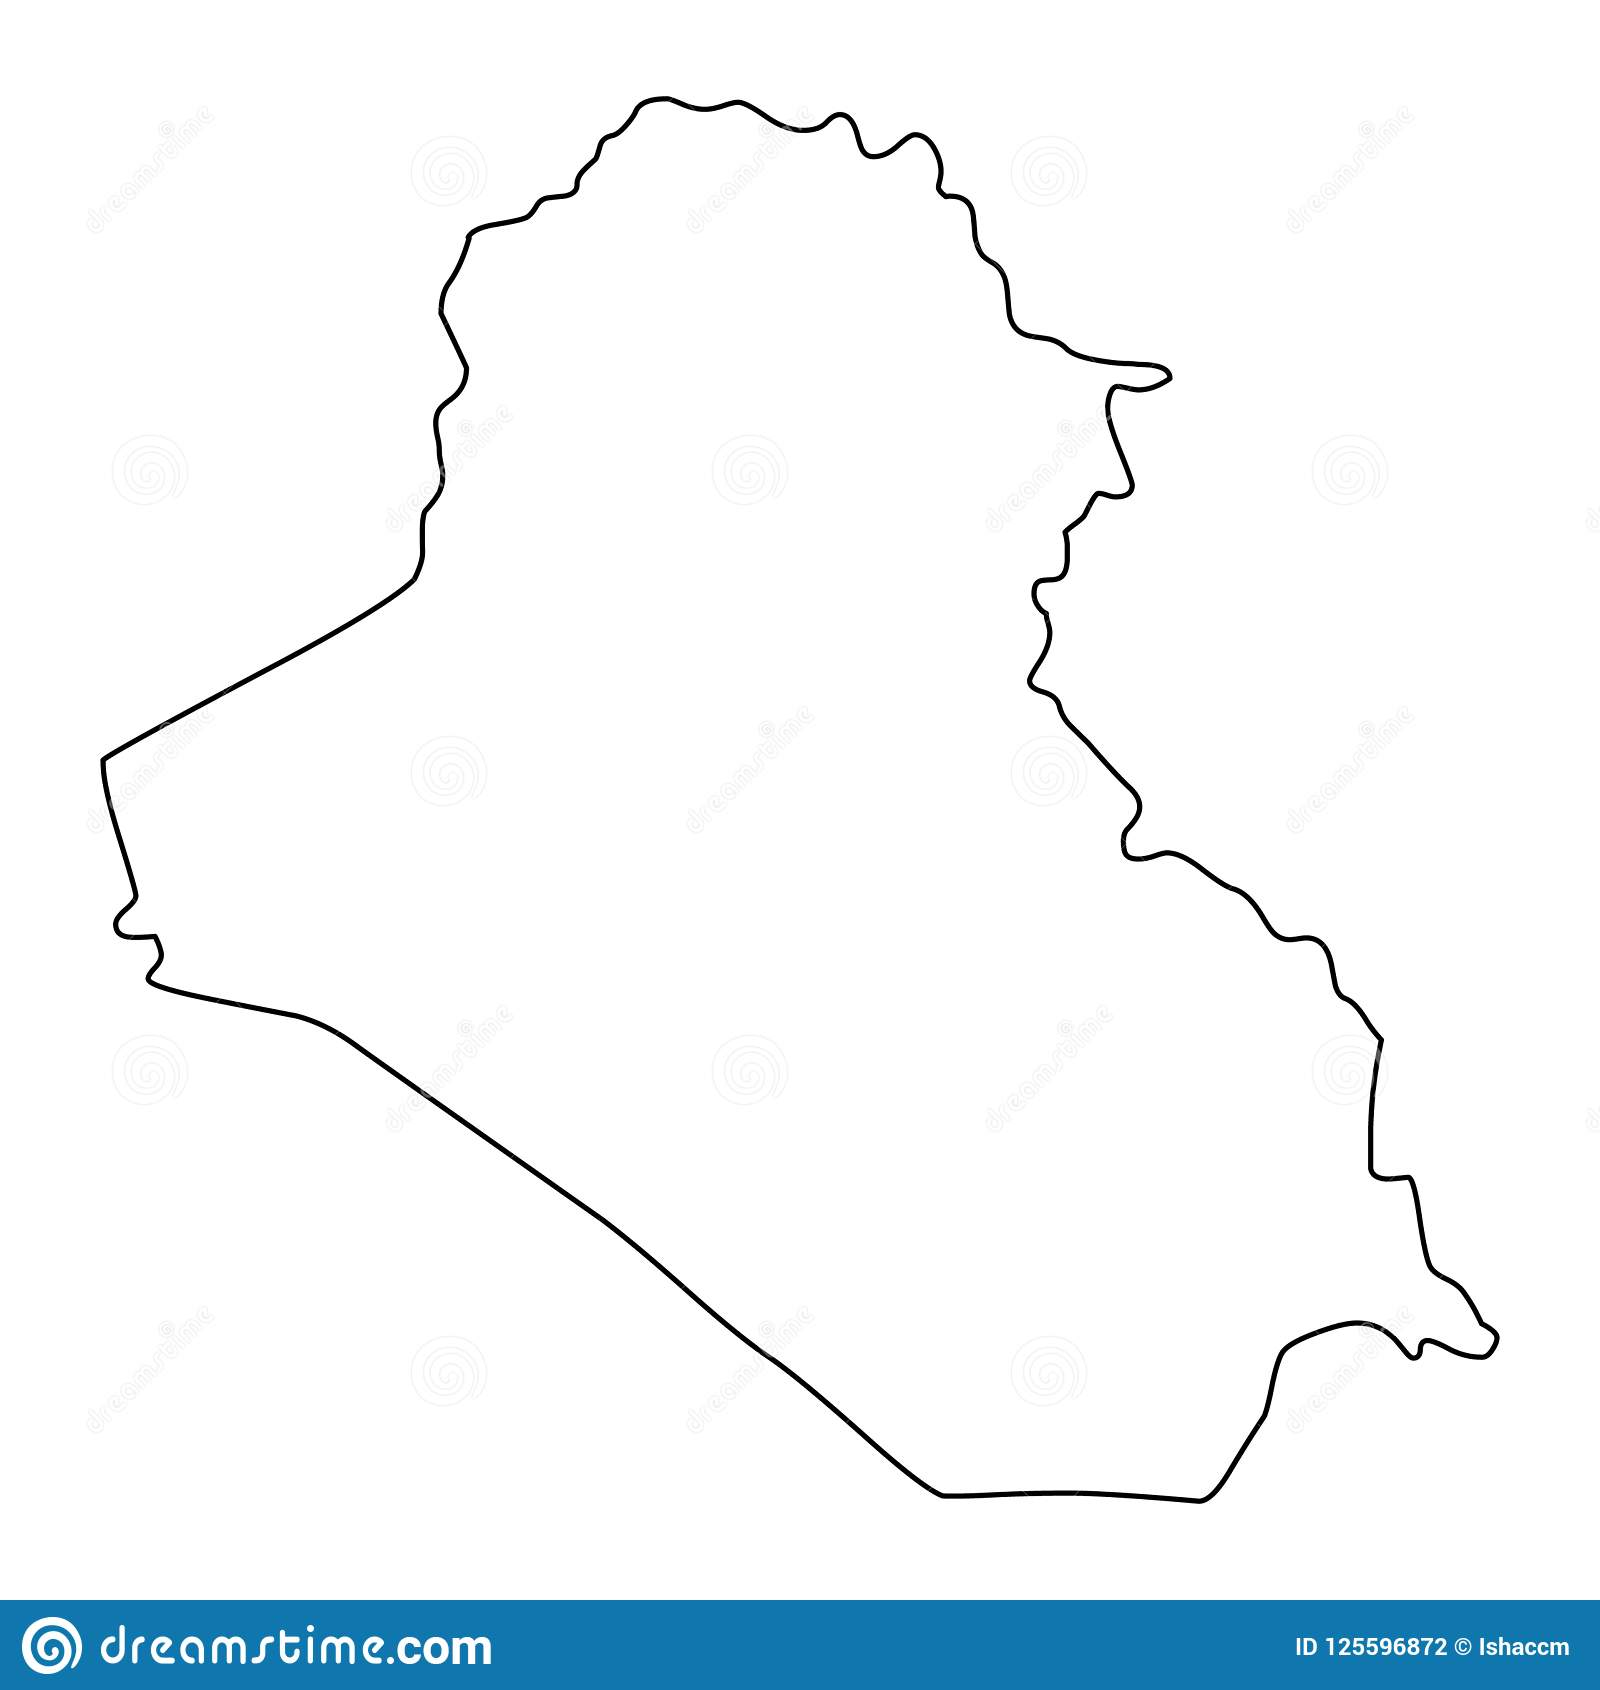 Iraq Map Outline Vector Illustration Stock Vector - Illustration of